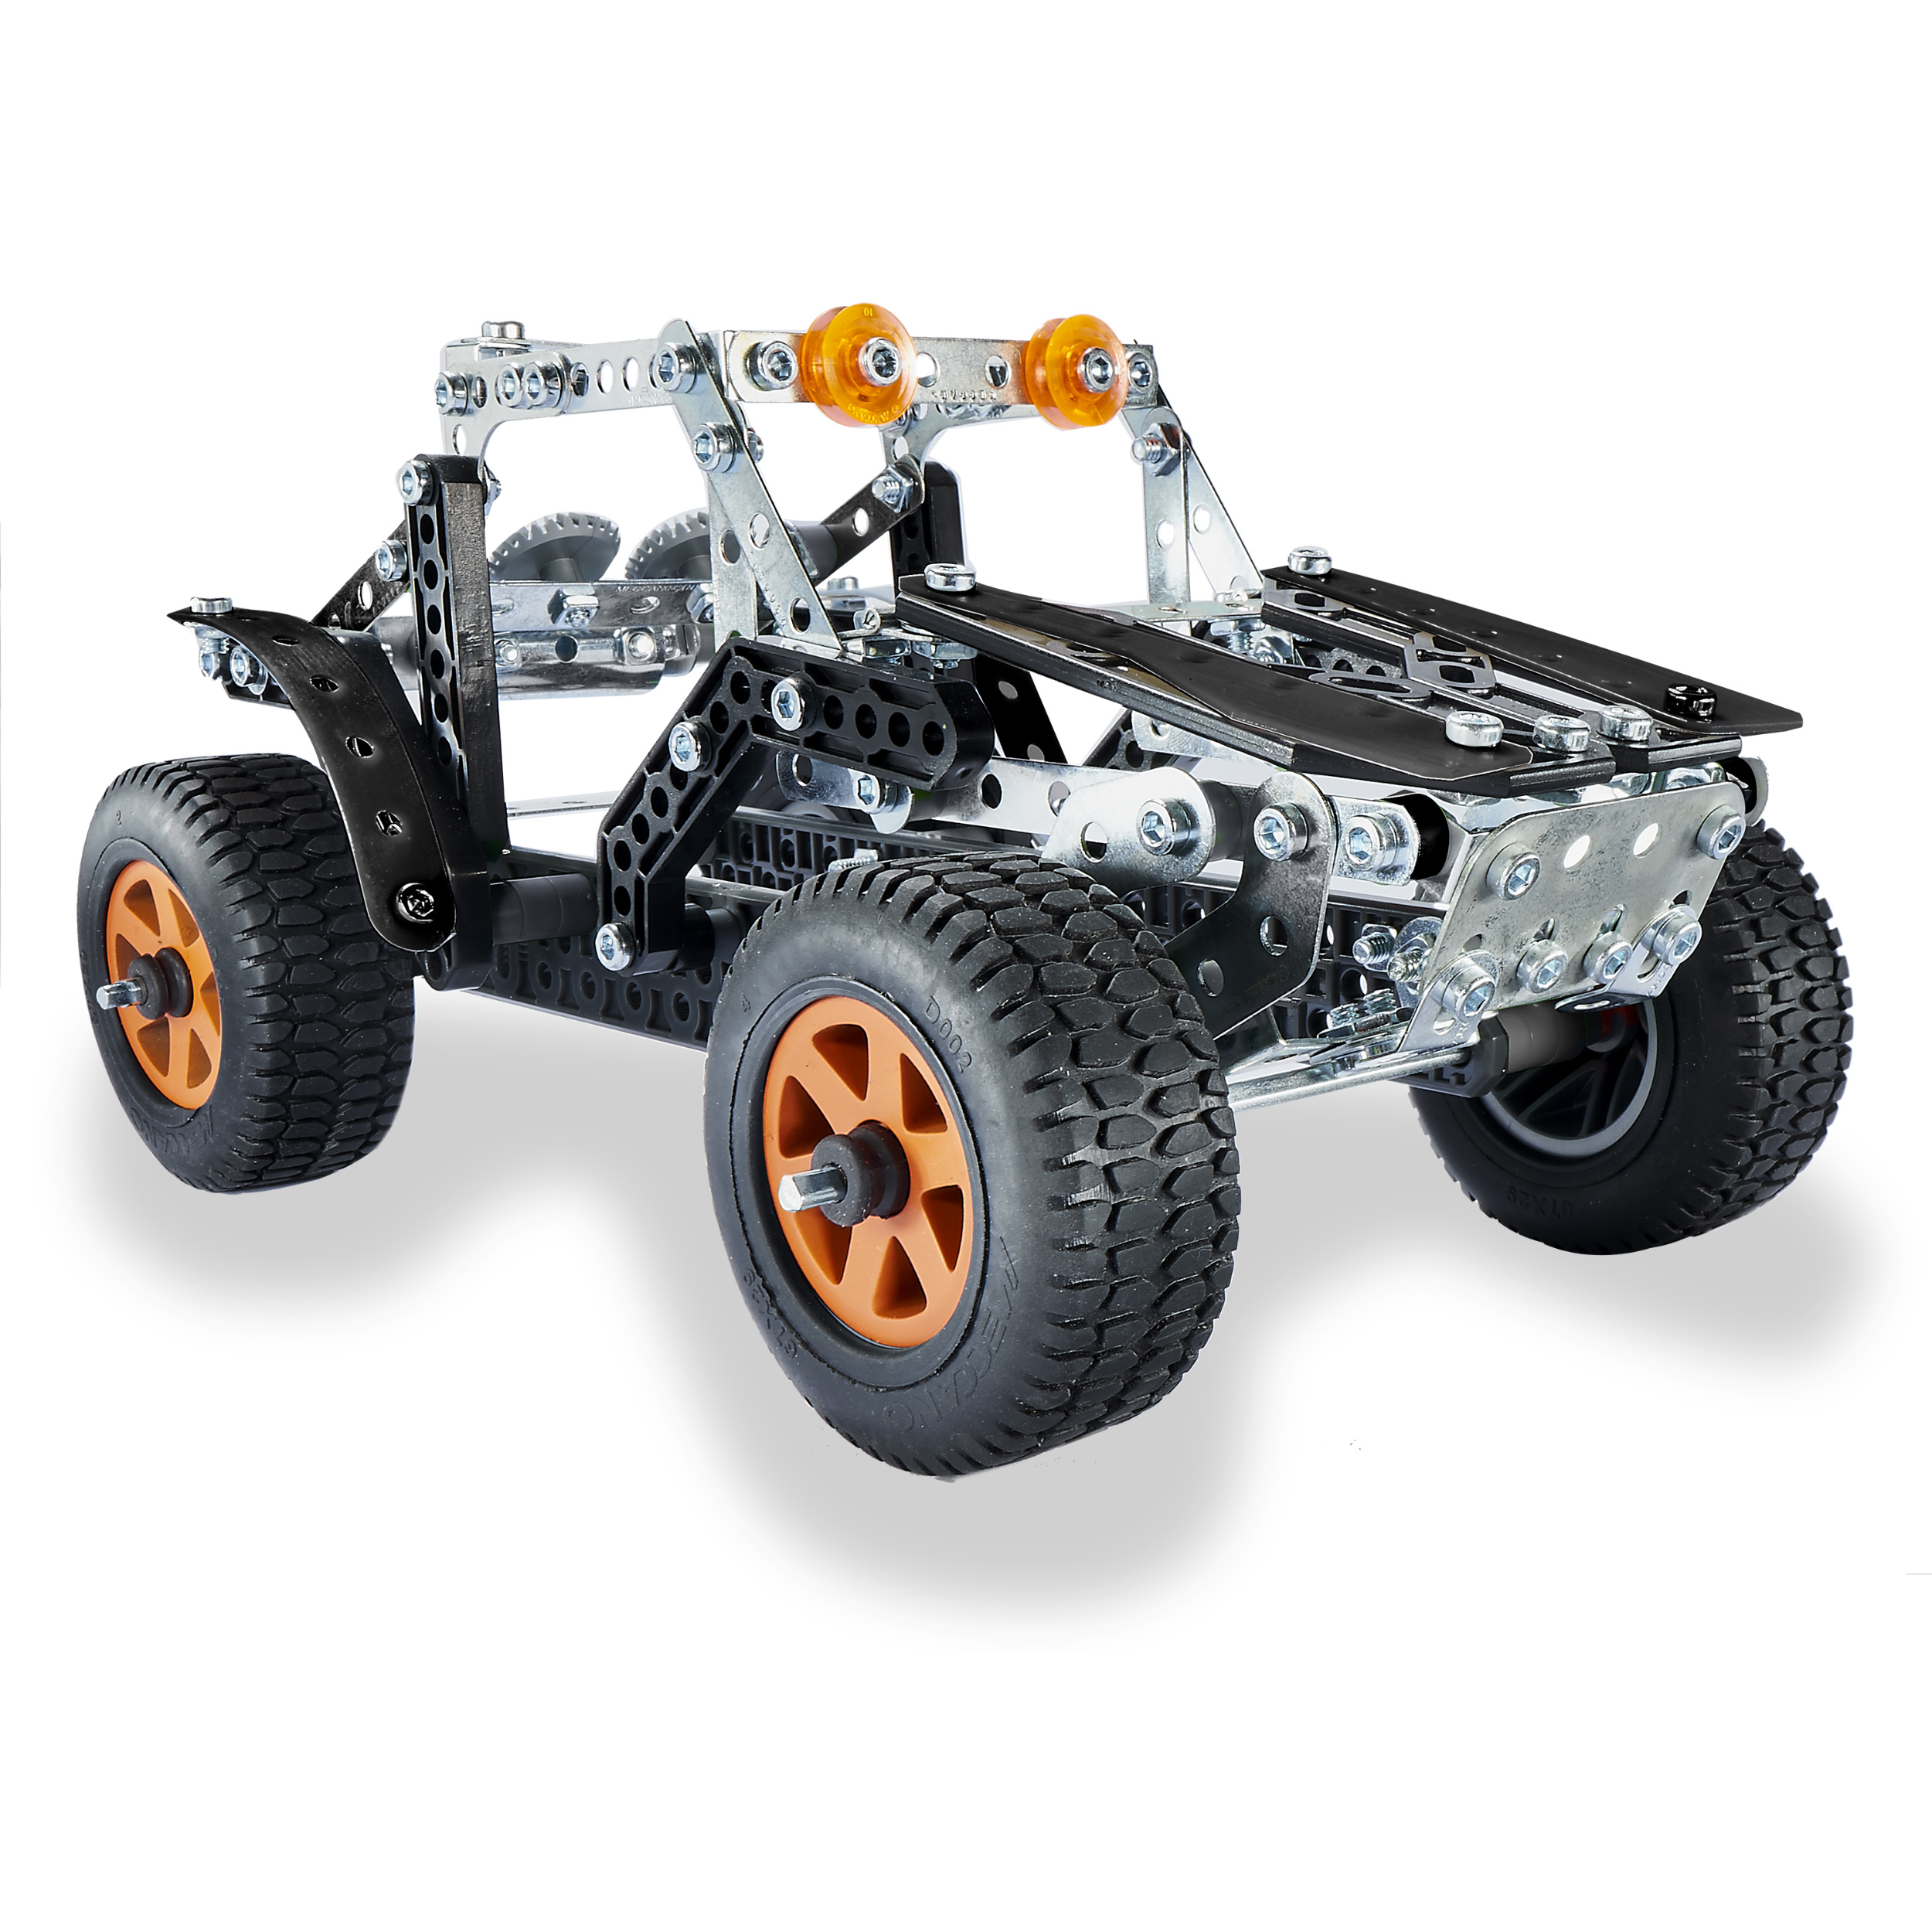 Erector by Meccano, 4x4 Off-Road Truck 25 Model Building Set, 443 Pieces, For Ages 9 and... by Spin Master Ltd